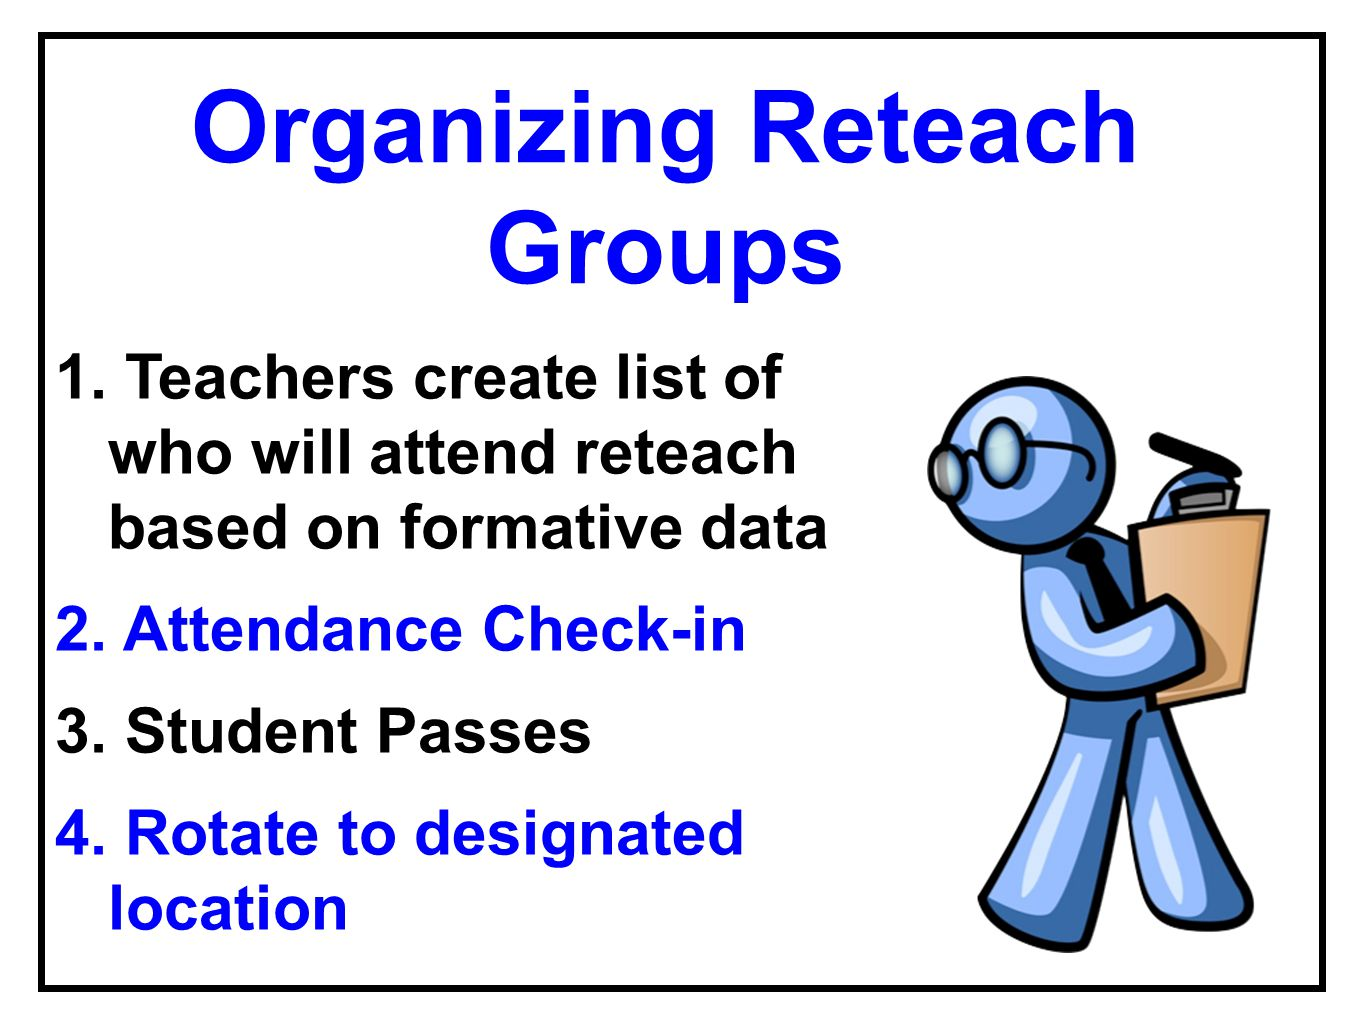 Organizing Reteach Groups 1. Teachers create list of who will attend reteach based on formative data 2. Attendance Check-in 3. Student Passes 4. Rotat